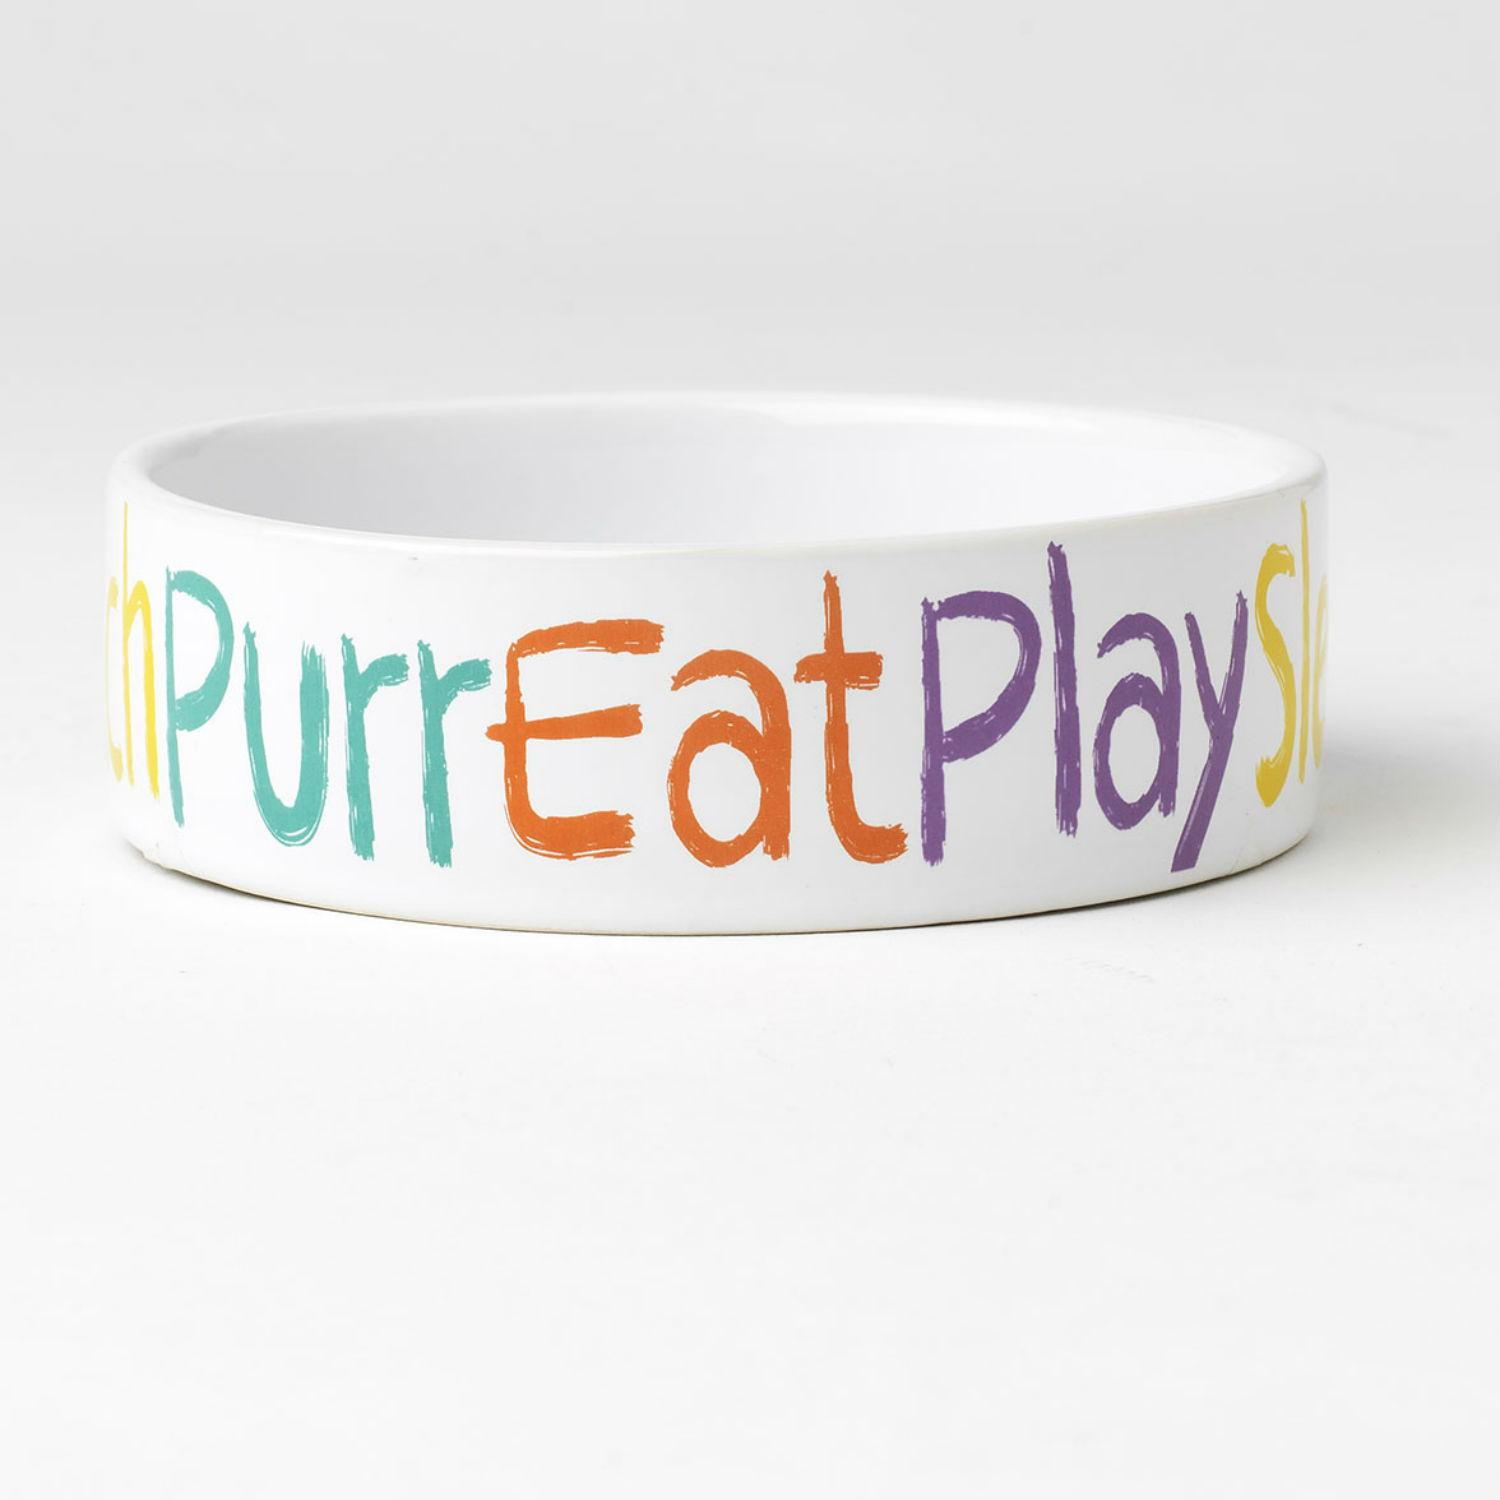 Crayon Kitty Cat Bowl - Purr, Eat, Play, Sleep